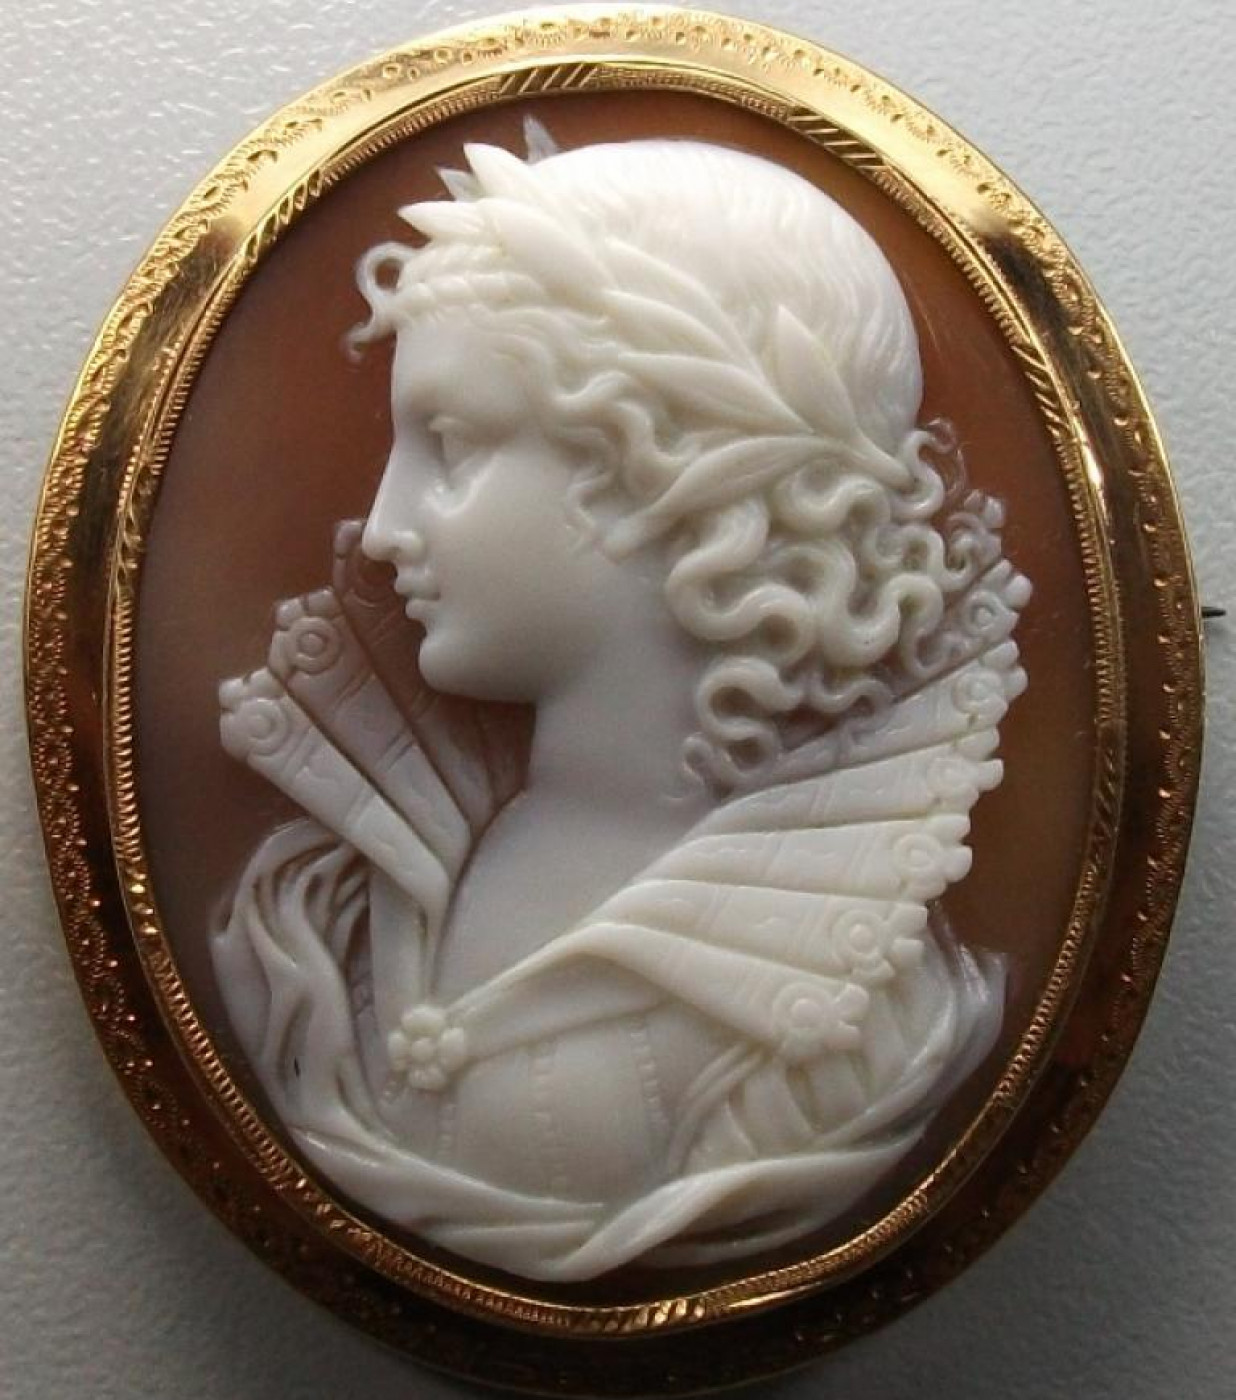 Cameo of Queen Elizabeth the 1st